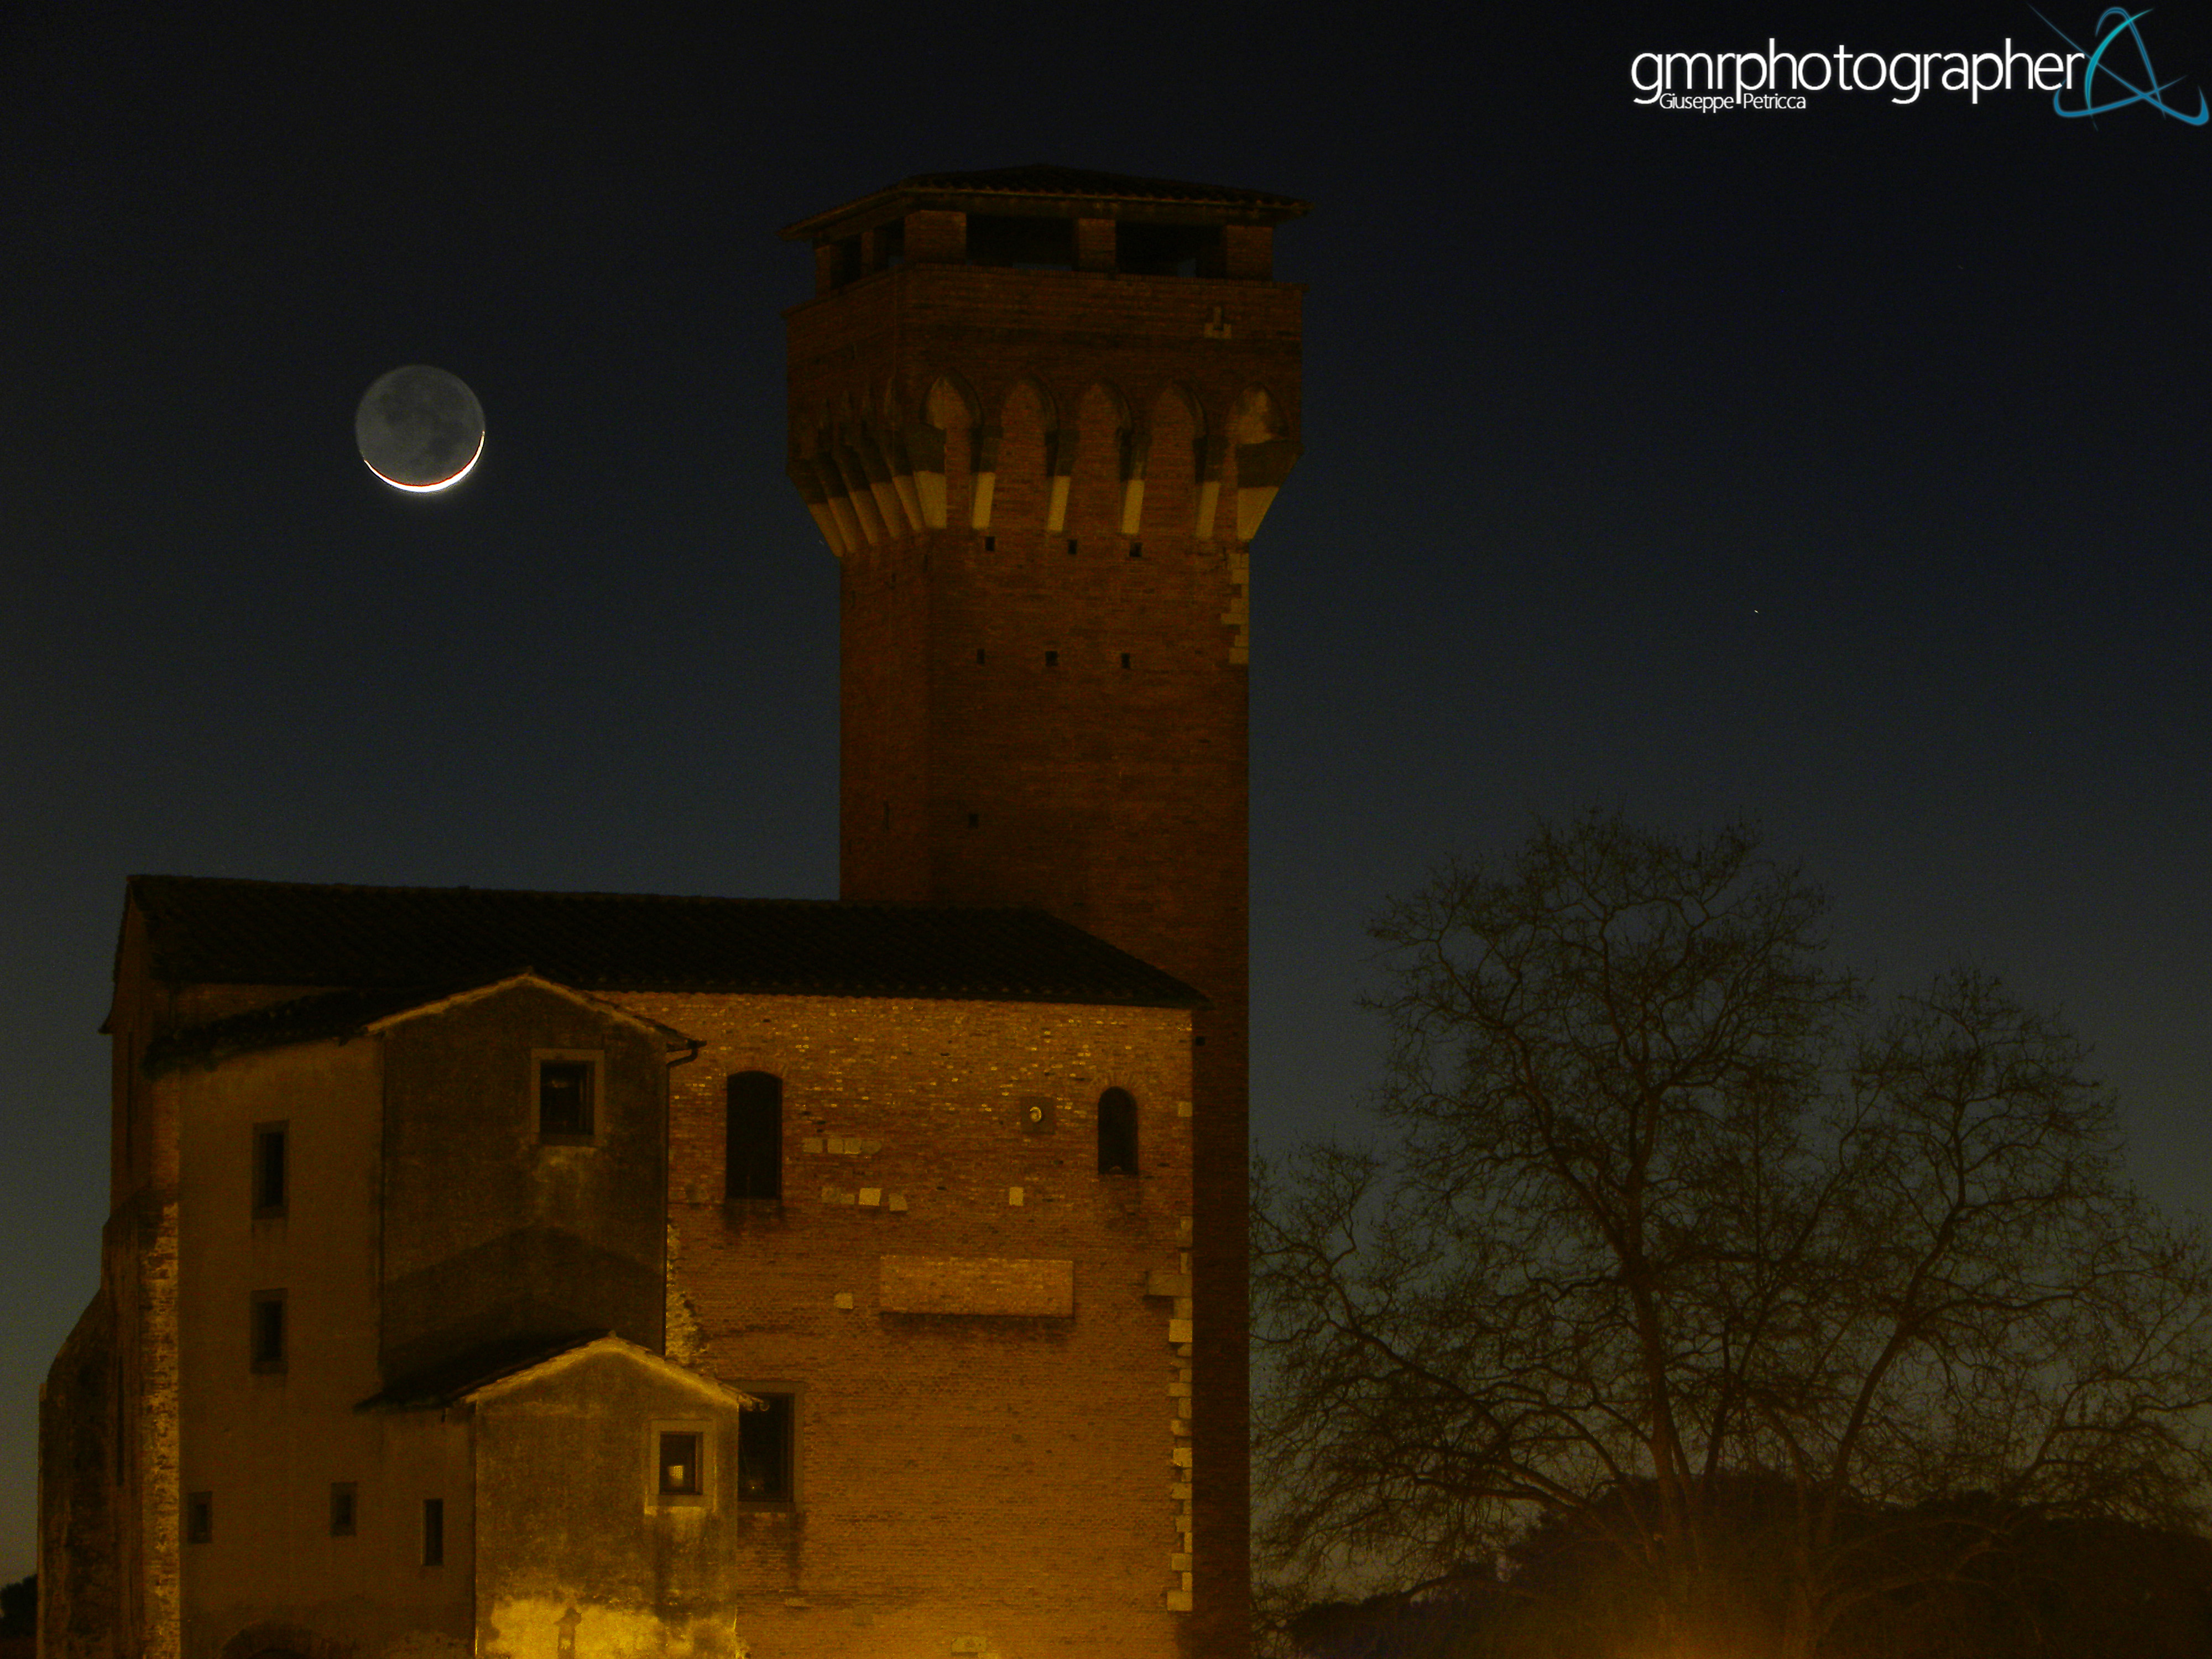 Moon Aglow with Earthshine Over Citadel by Giuseppe Petricca